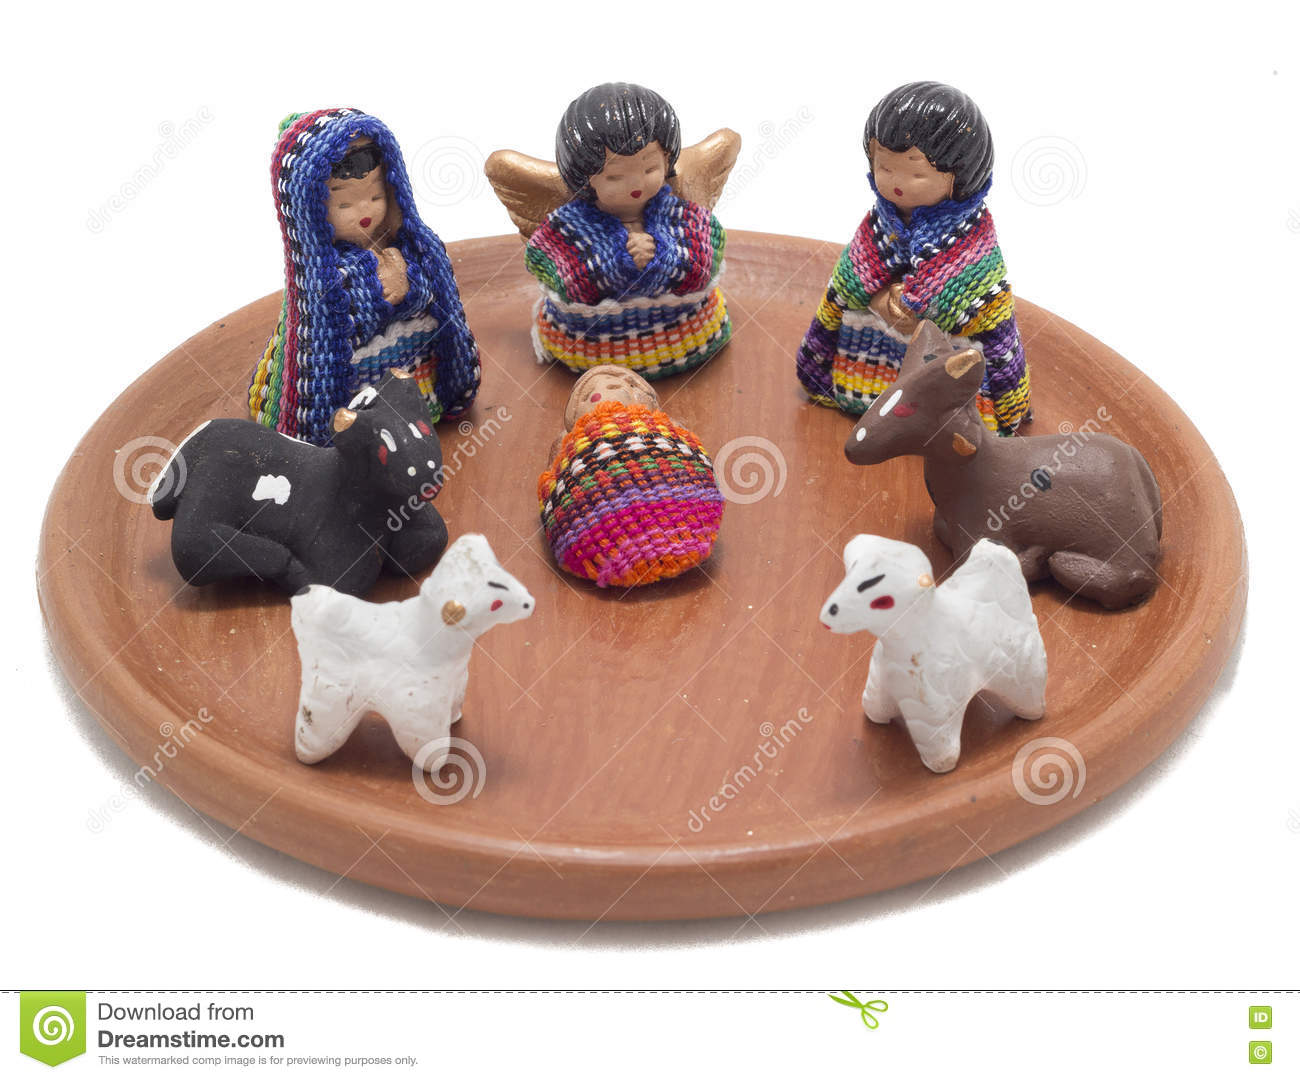 guatemalan-nativity-scene-christmas-decoration-made-clay-colorful-fabric-posed-plate-75822933.jpg